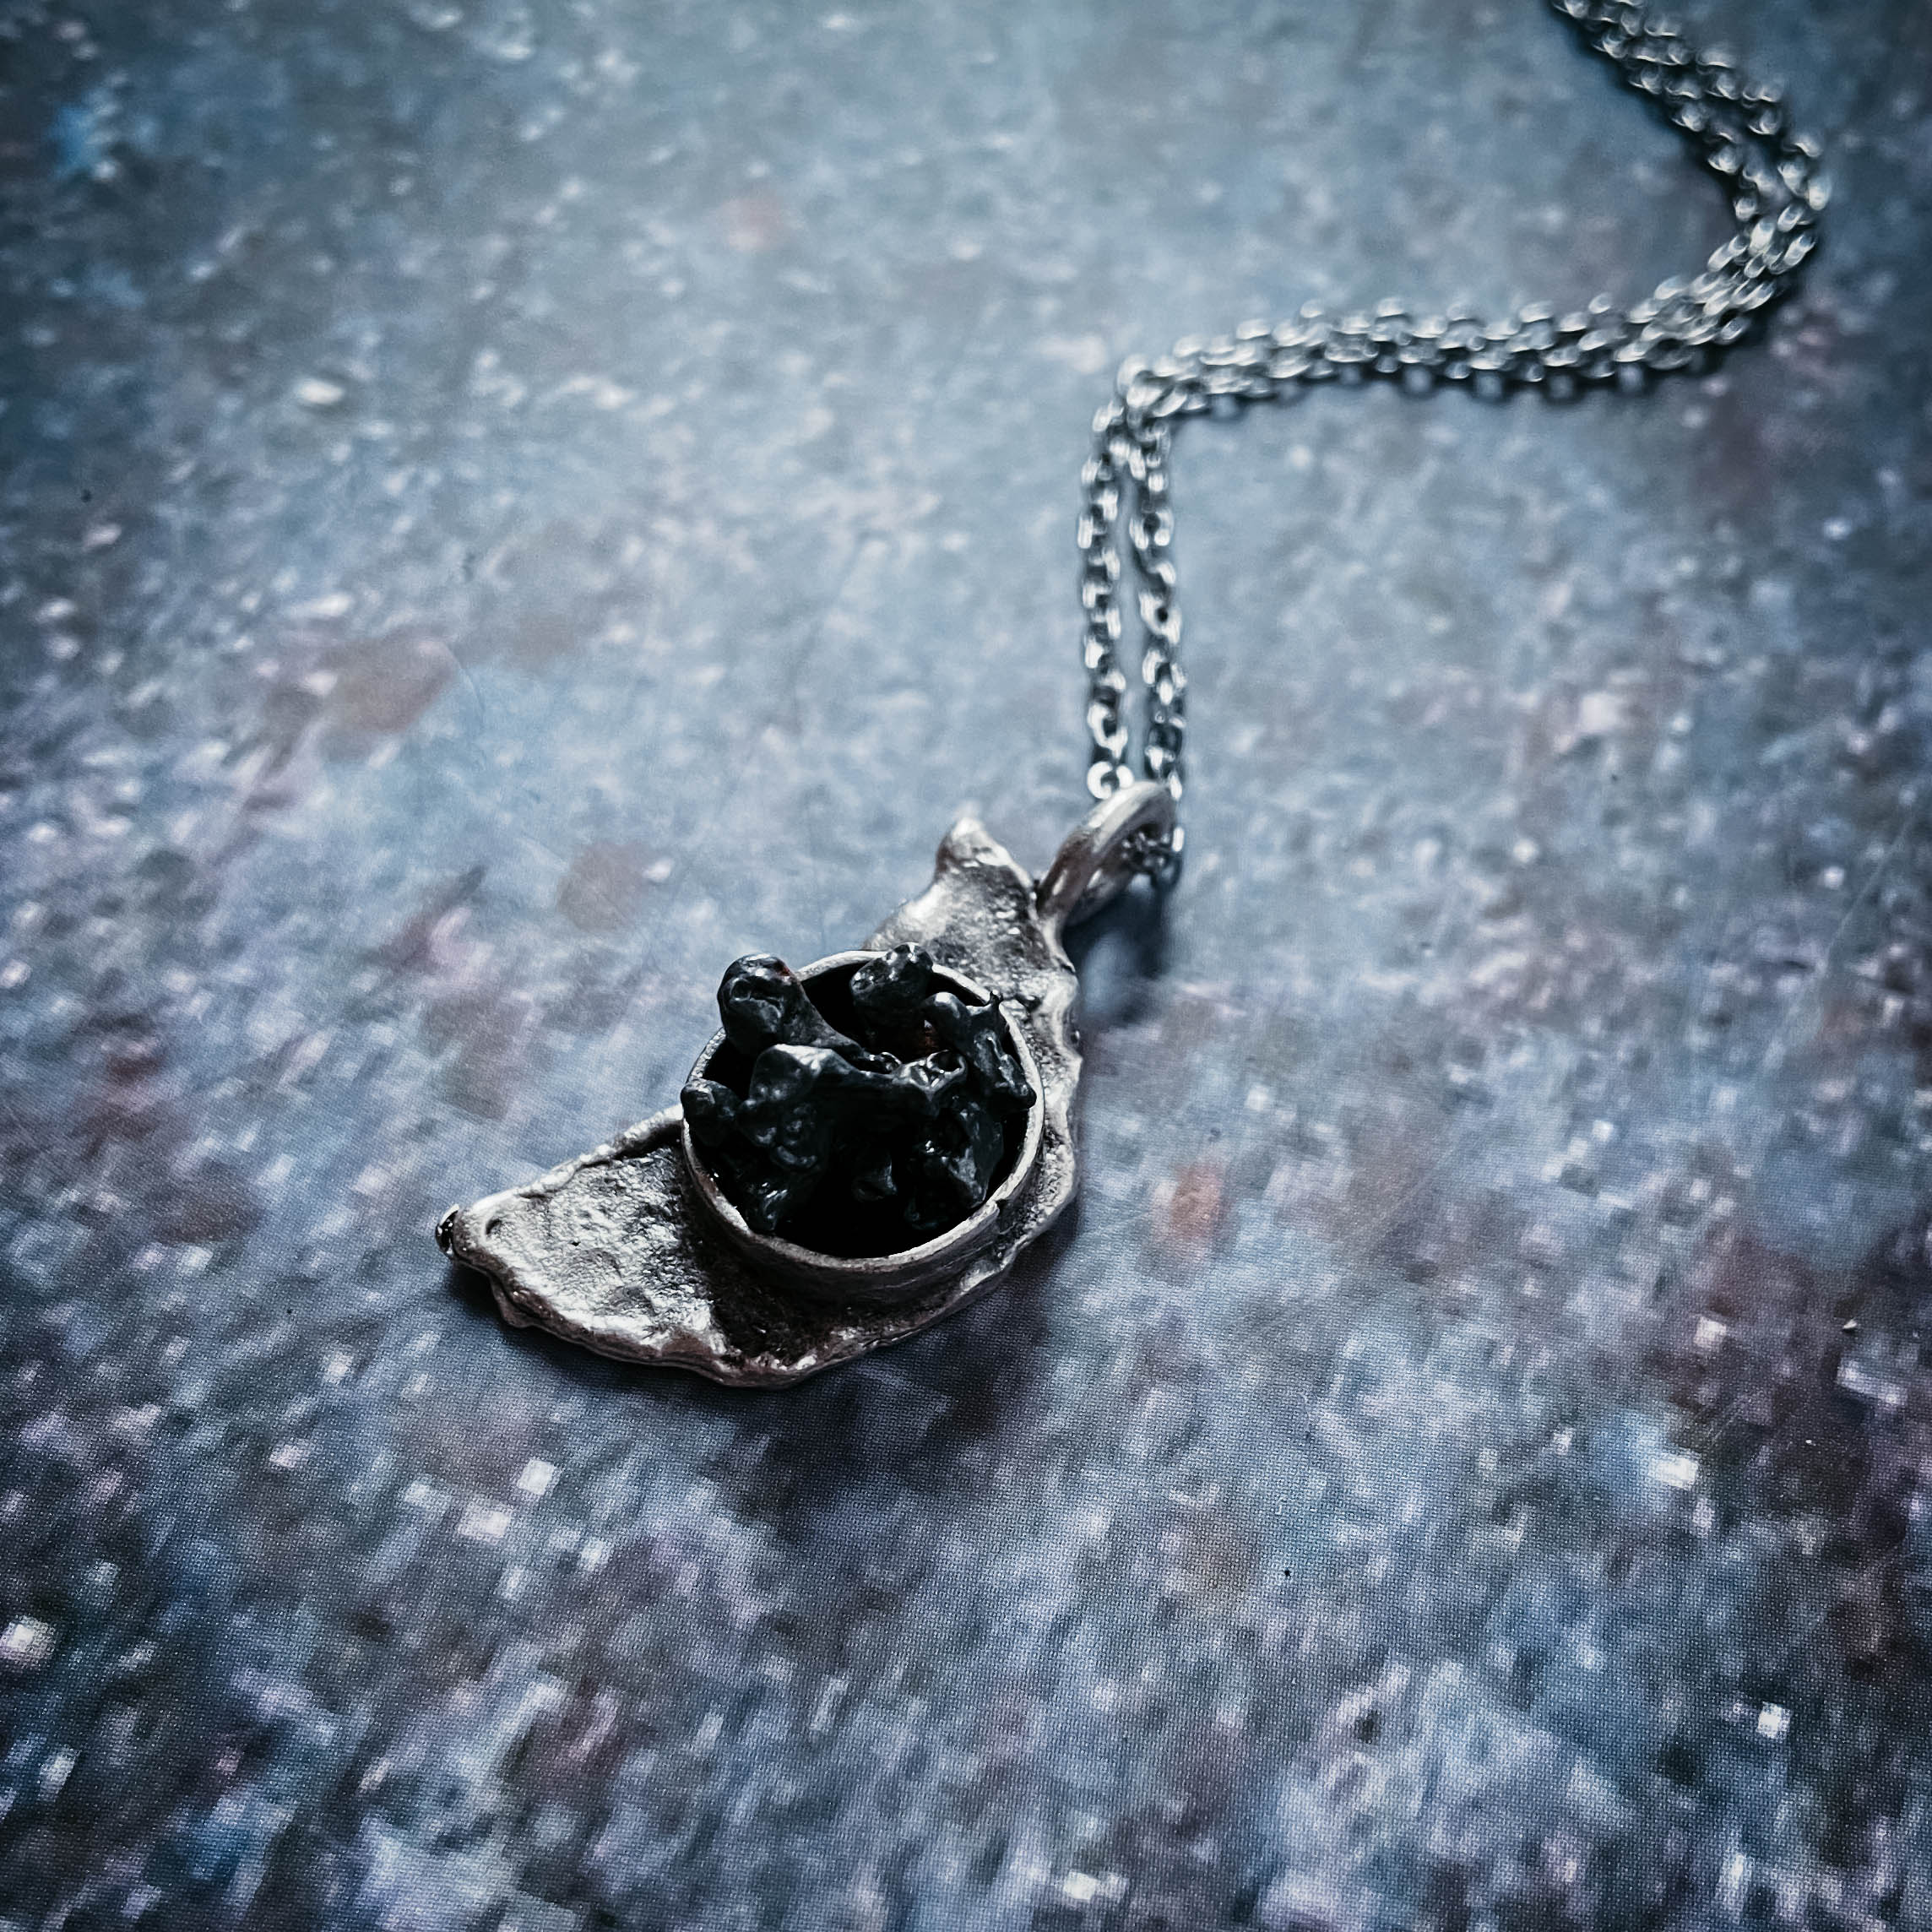 Crescent Moon Necklace with Authentic Meteorite